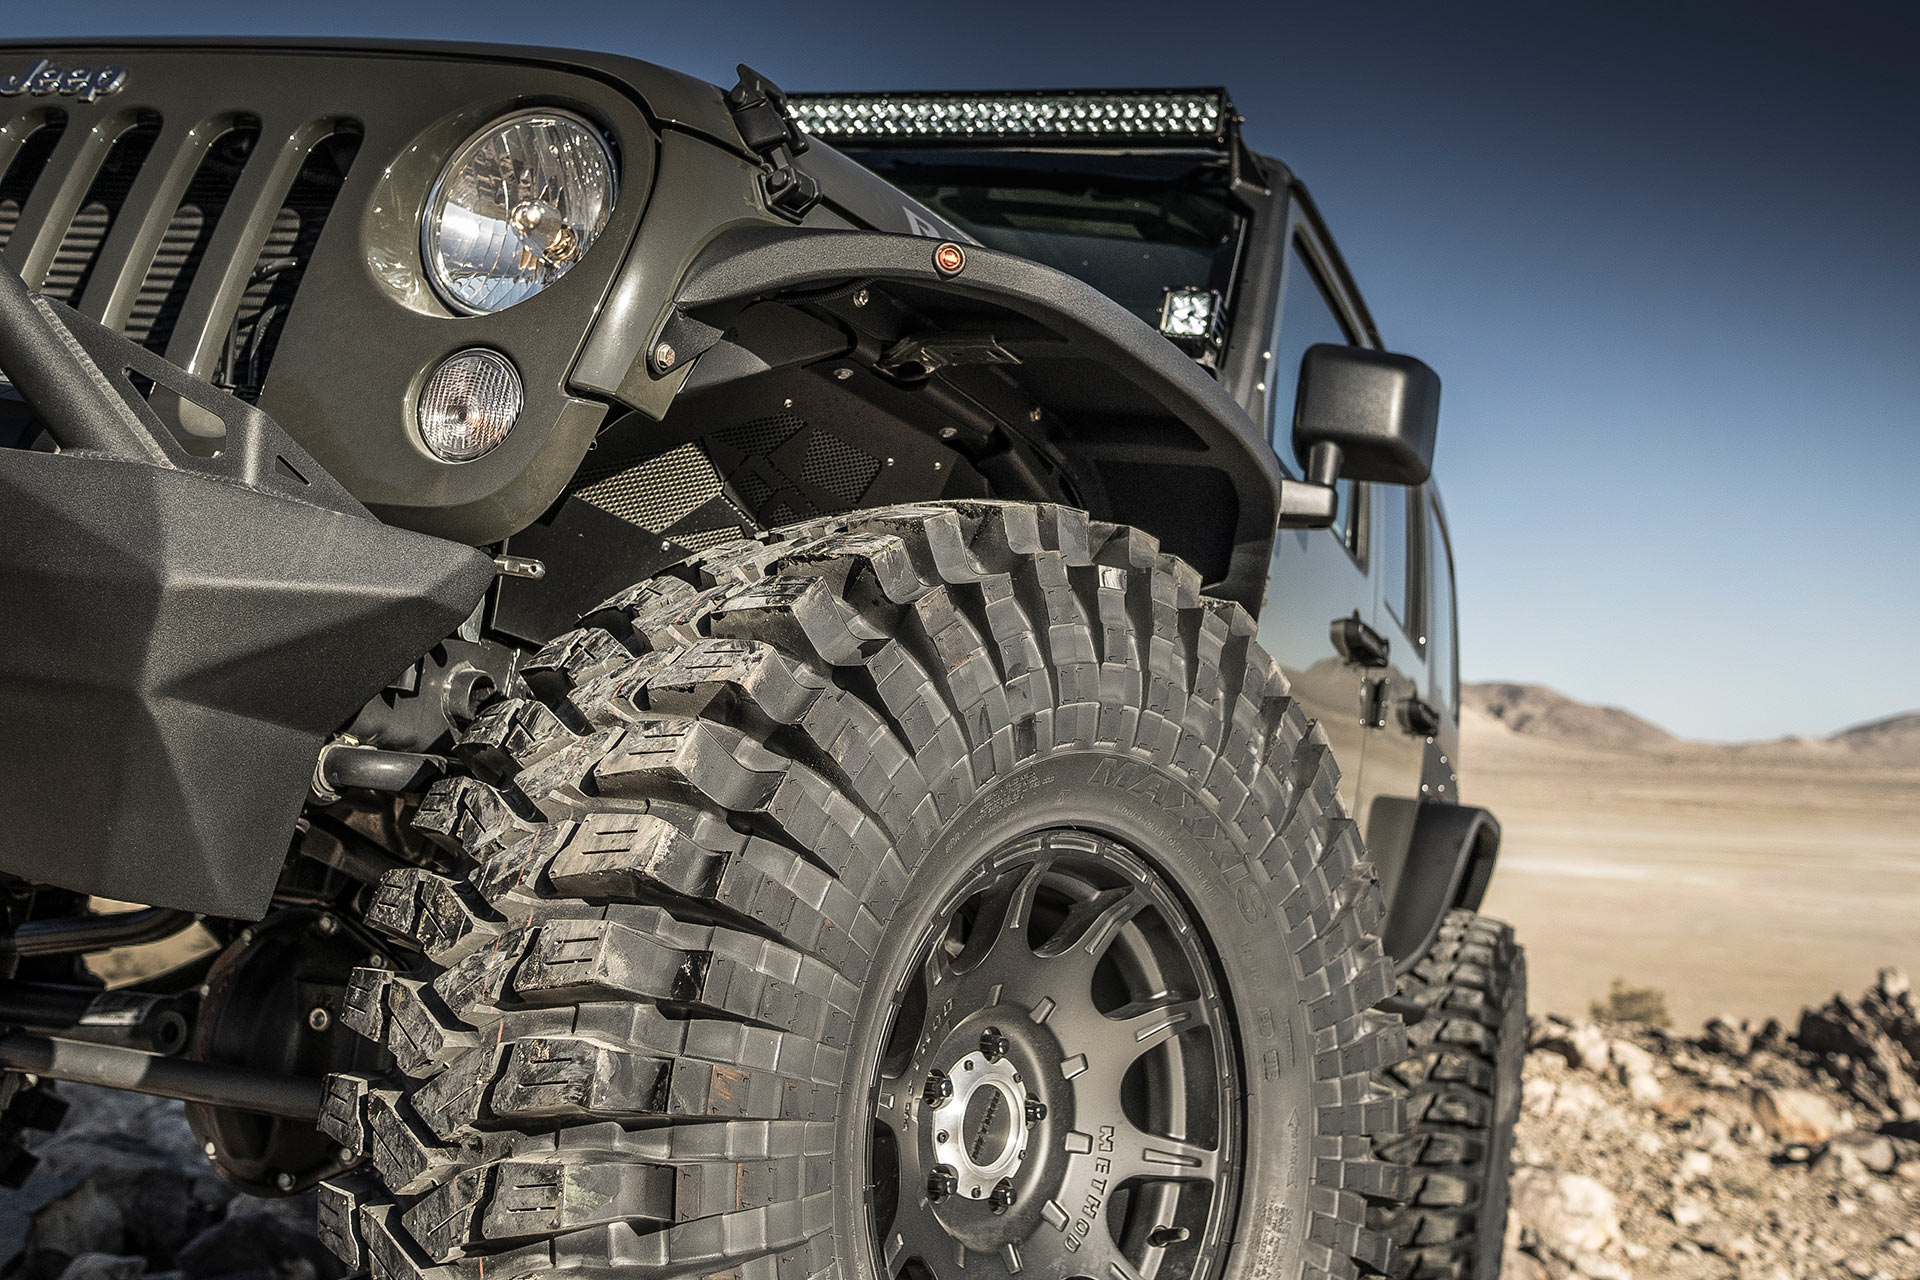 Maxxis Trepador extreme tires on vehicle in desert